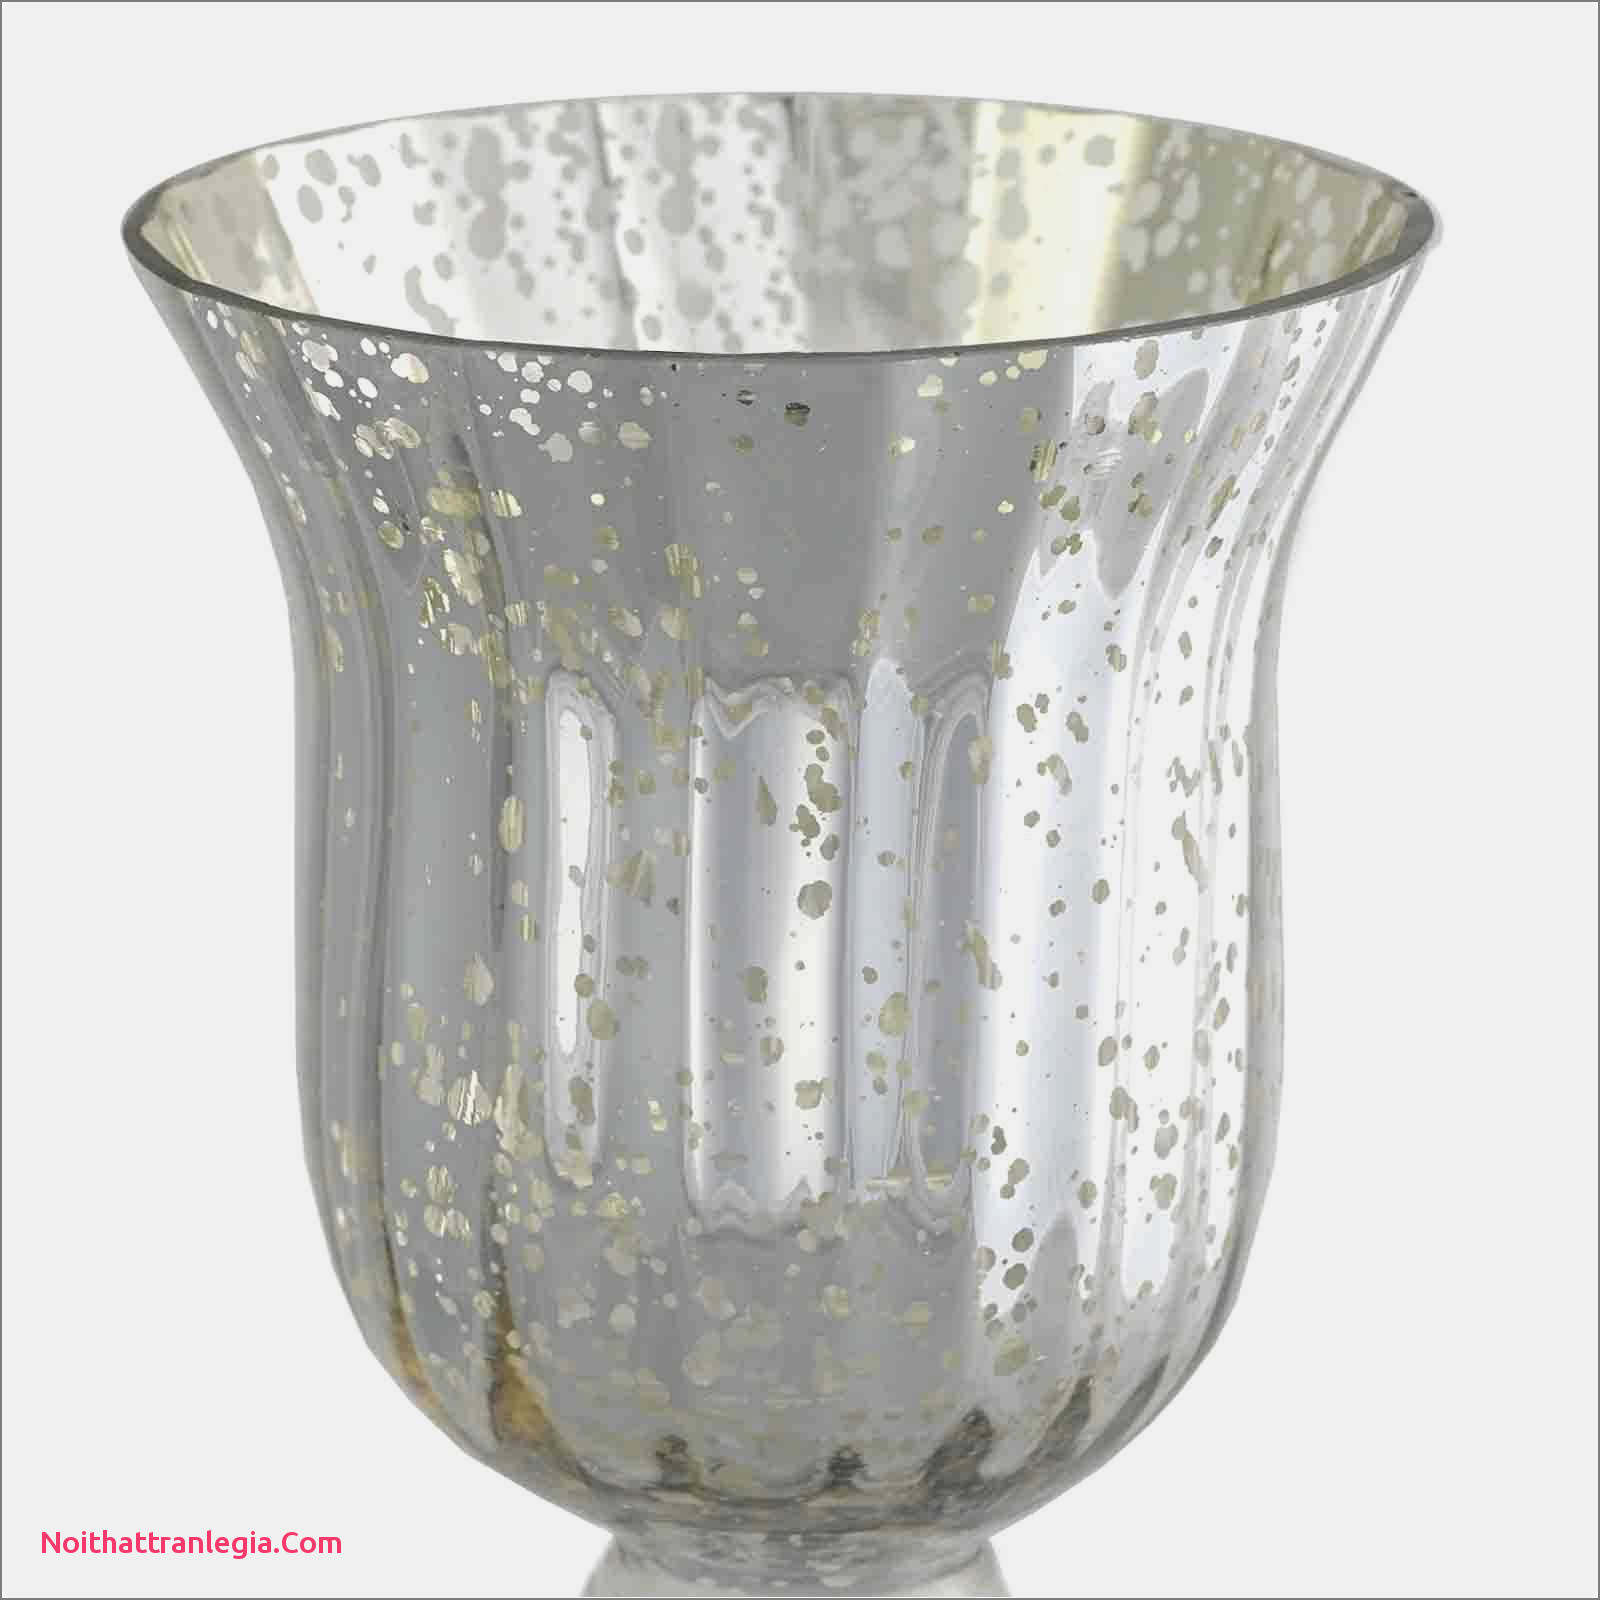 small silver vase of 20 wedding vases noithattranlegia vases design within wedding guest gift ideas inspirational candles for wedding favors superb pe s5h vases candle vase i